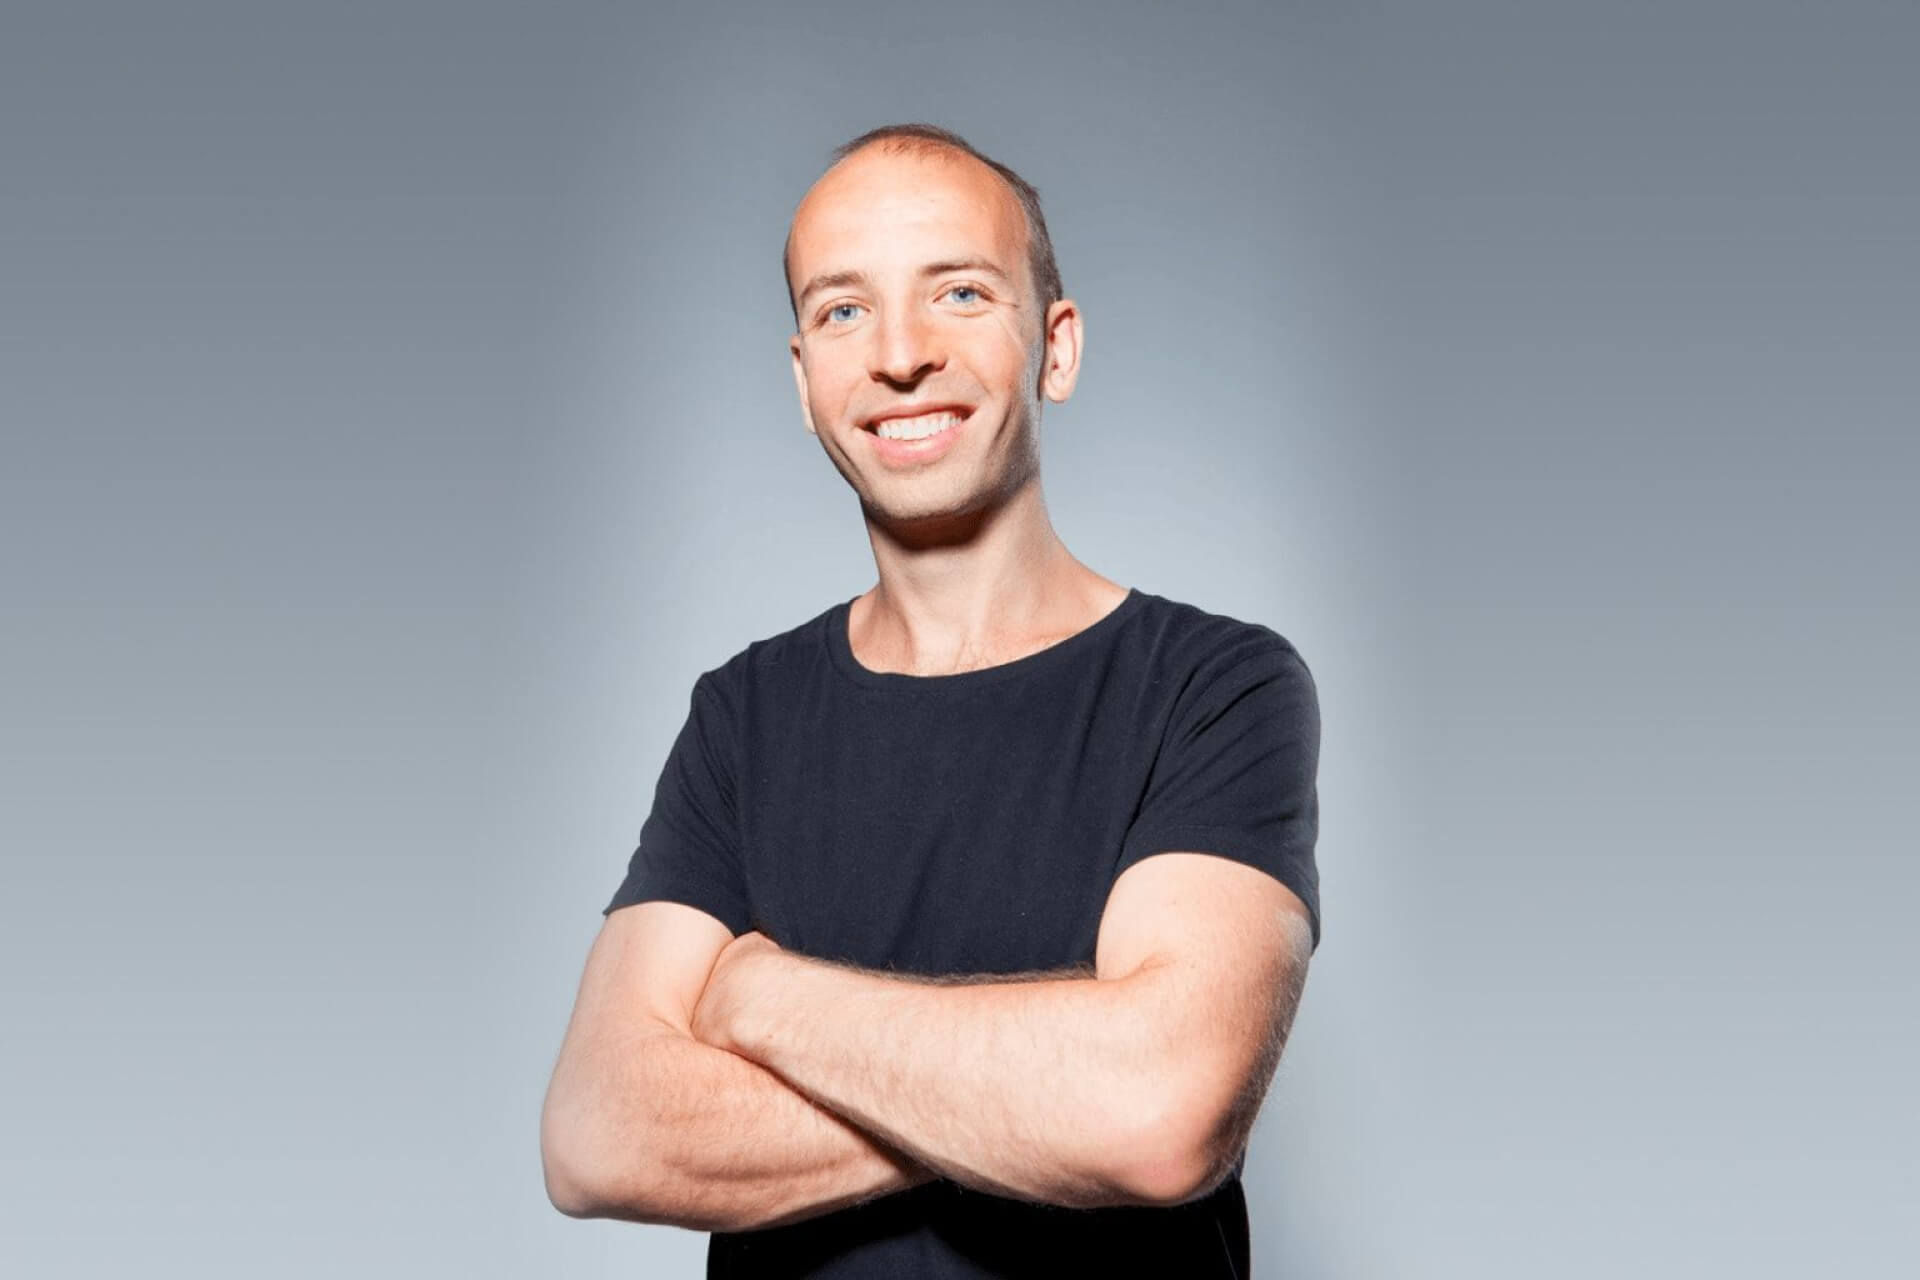 Habits and Routines of Entrepreneur and SEO Expert Brian Dean